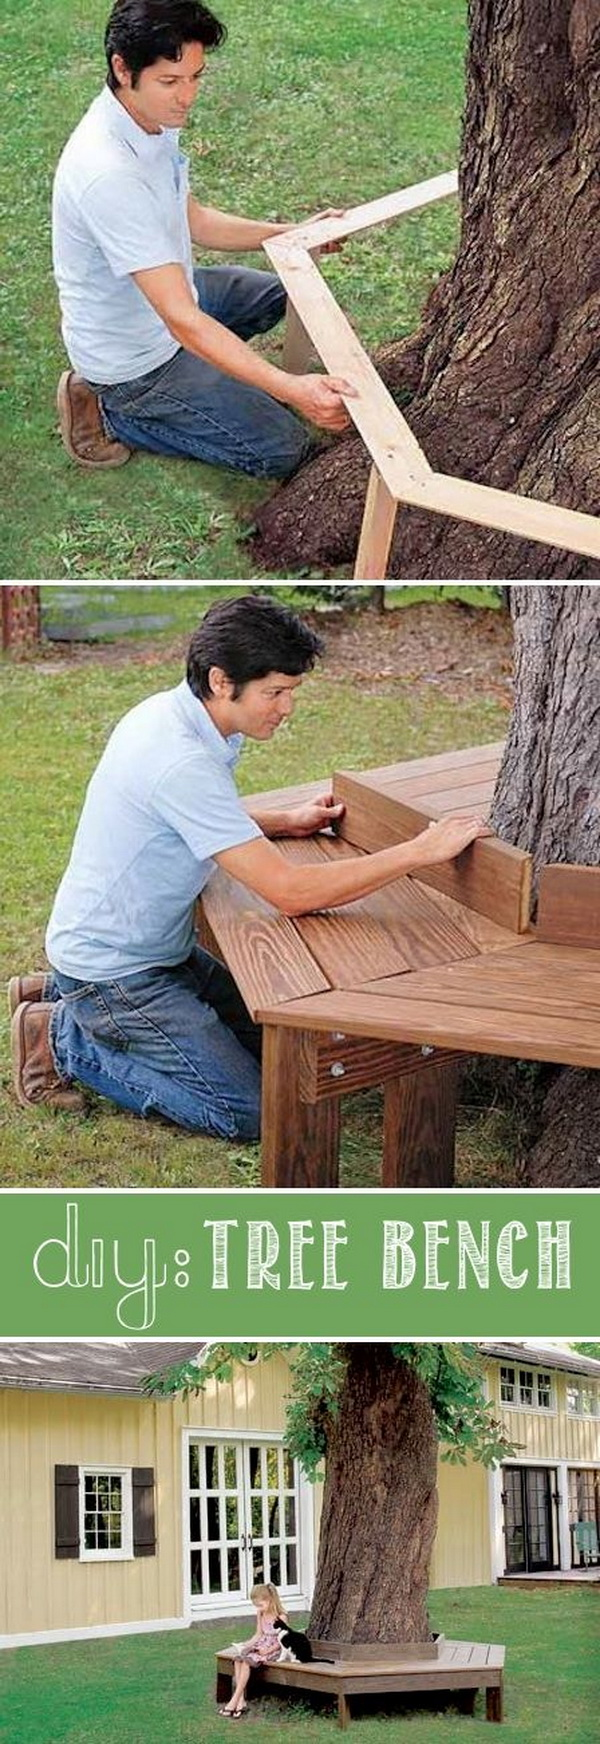 beautify your backyard with this diy tree bench